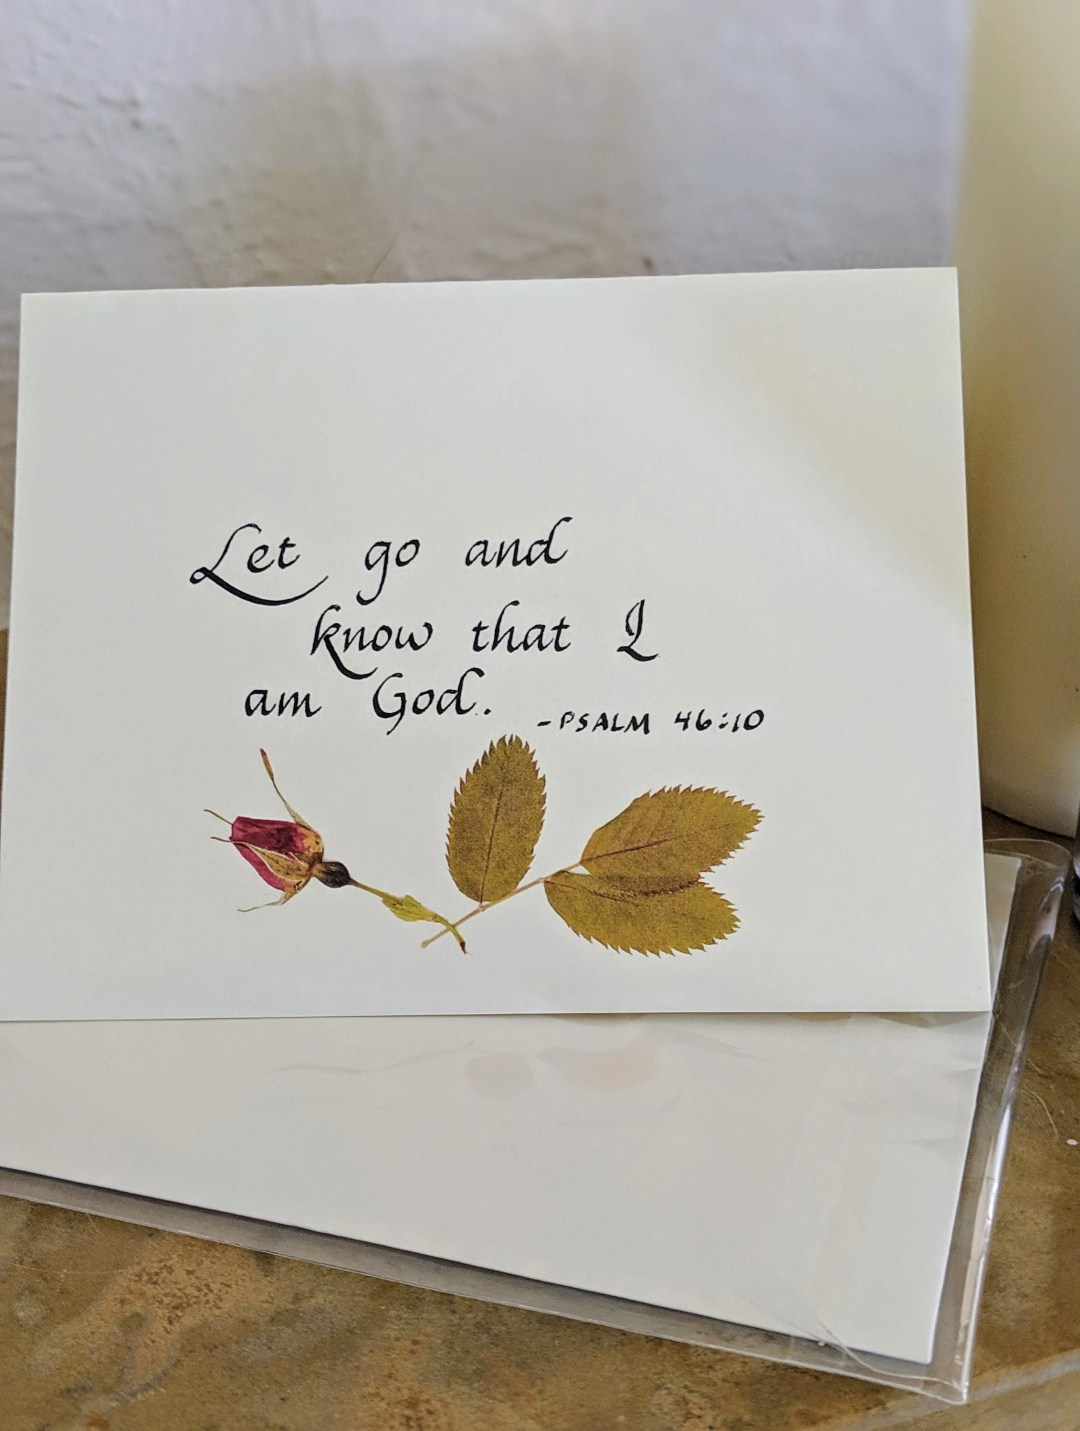 Christian greeting cards/ Thinking of you cards/ Christian note cards/ calligraphy greeting cards/care and comfort cards/Christian greeting